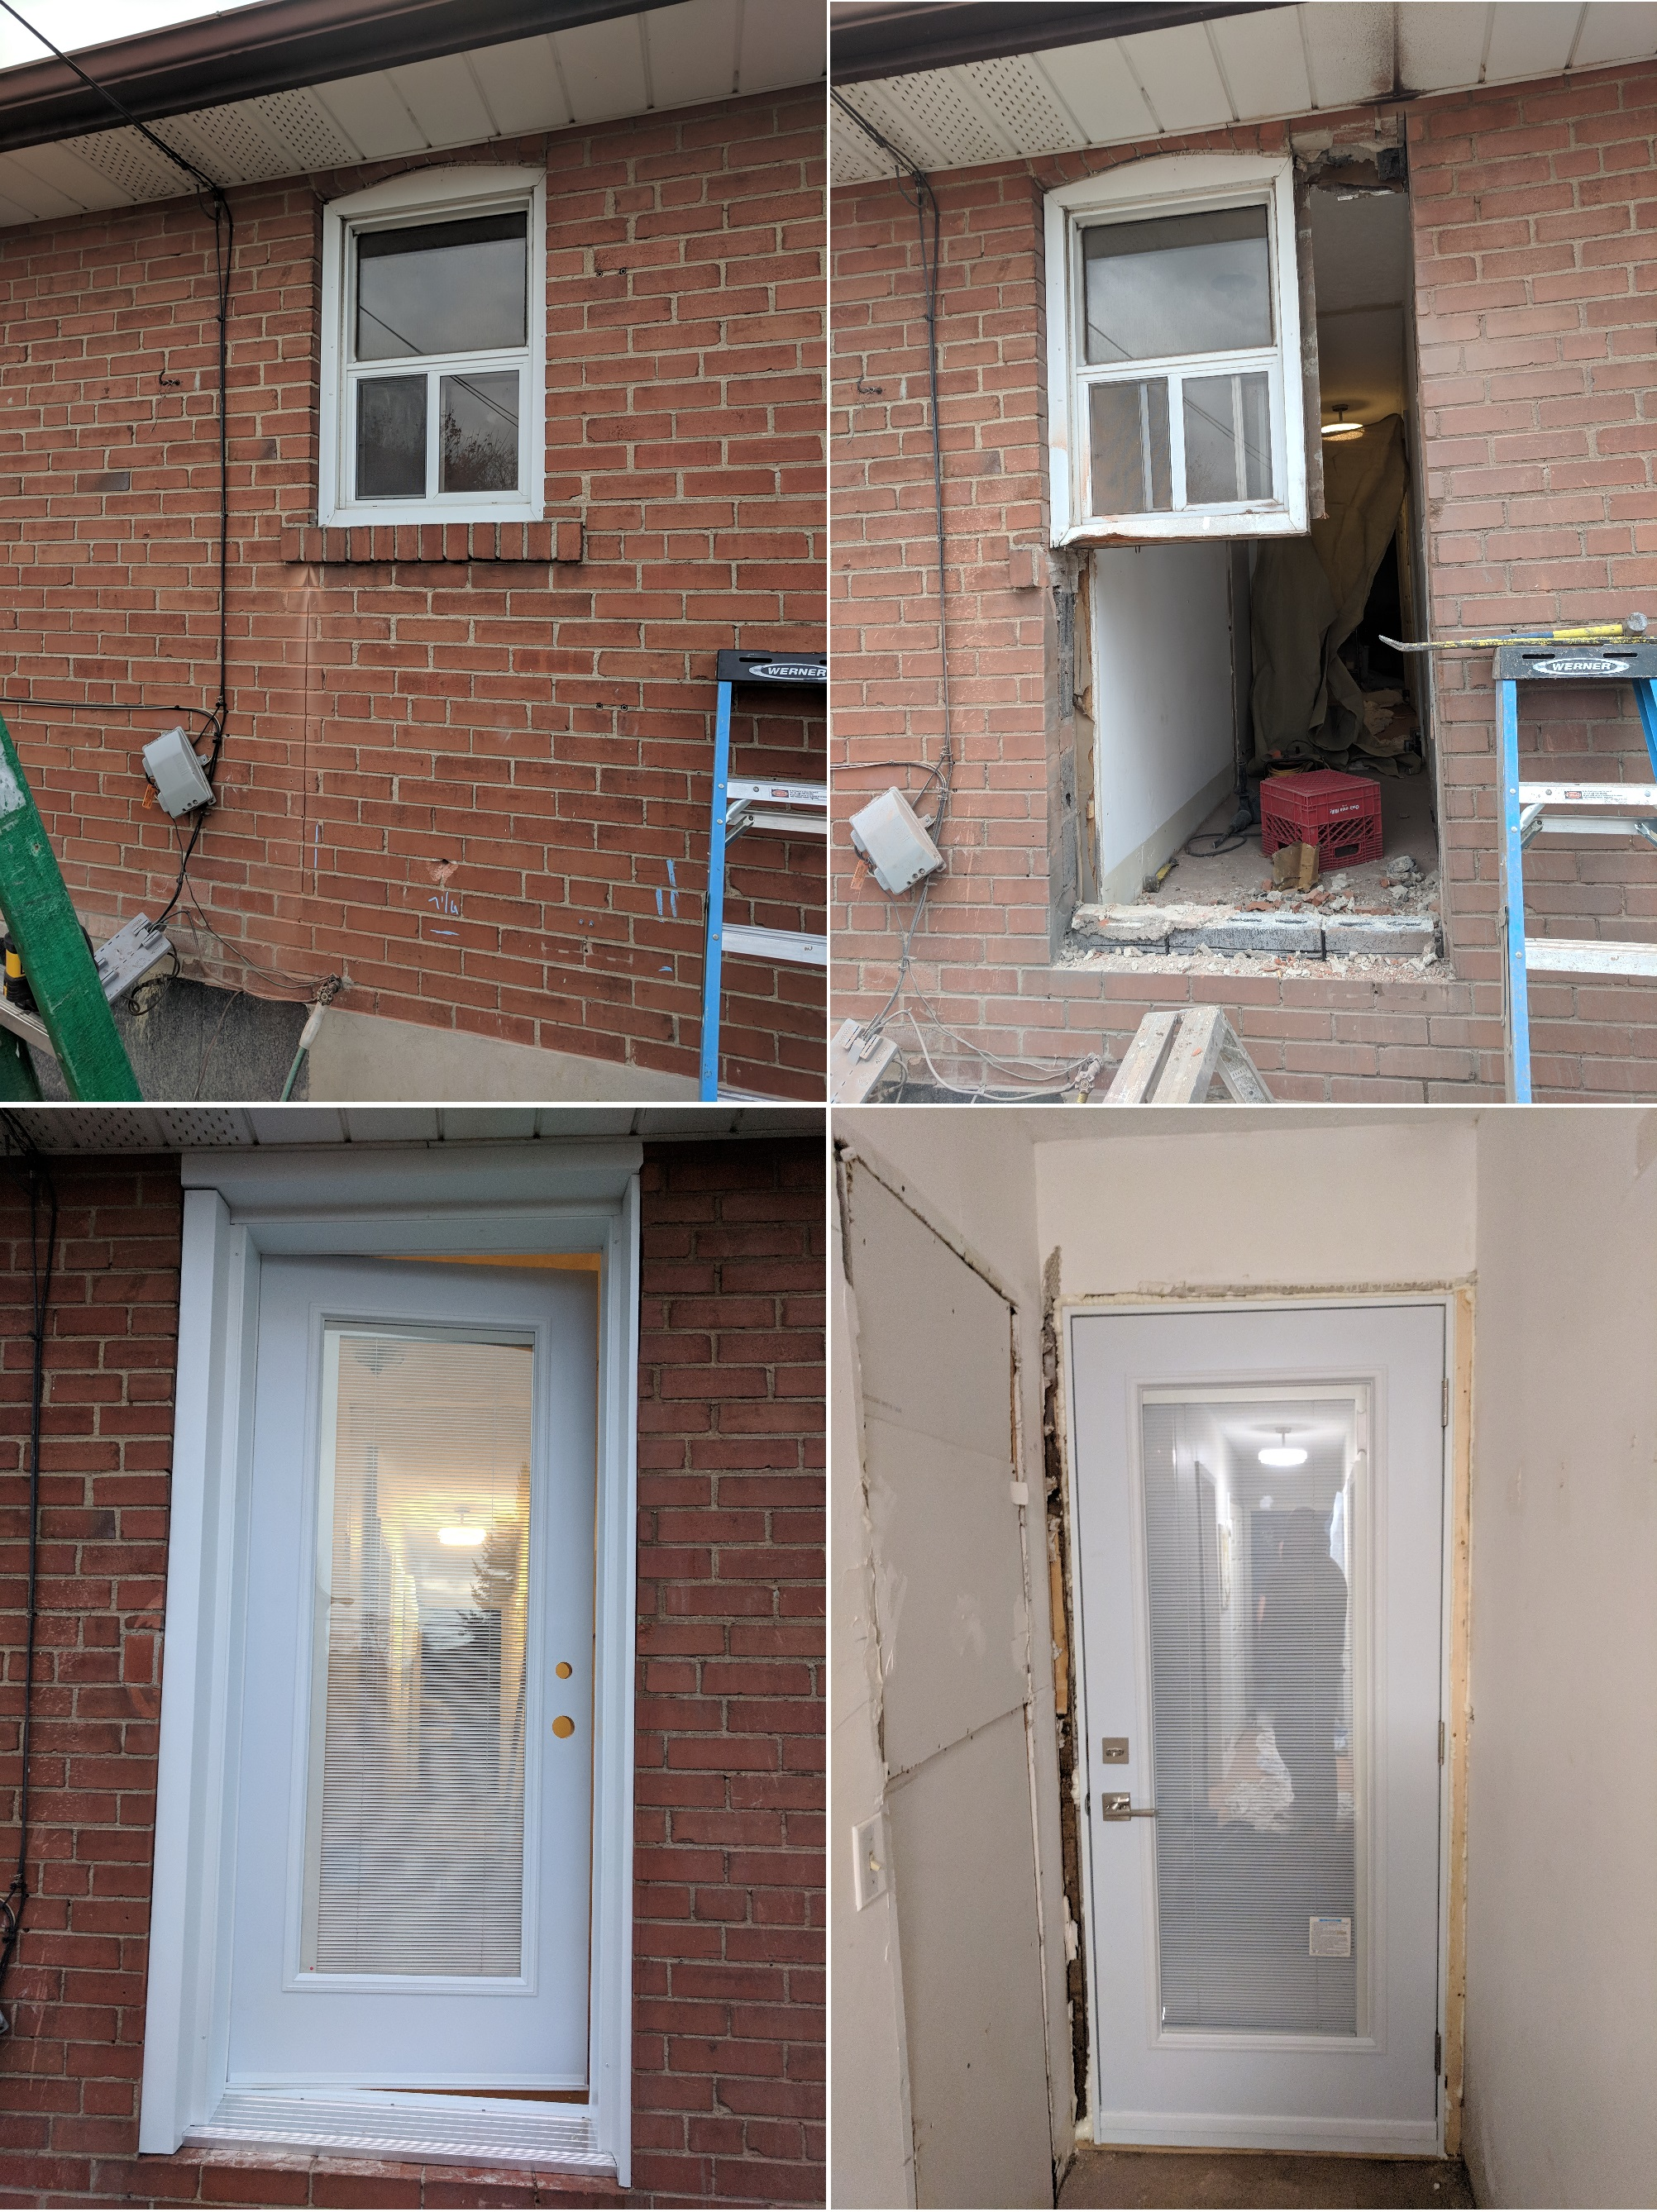 Cutting a brick. Converting an existing window into a single inswing patio door. Cut brick, aluminum capping flashing outside. No casing inside. Patio door with internal (tilt and lift) mini blinds.